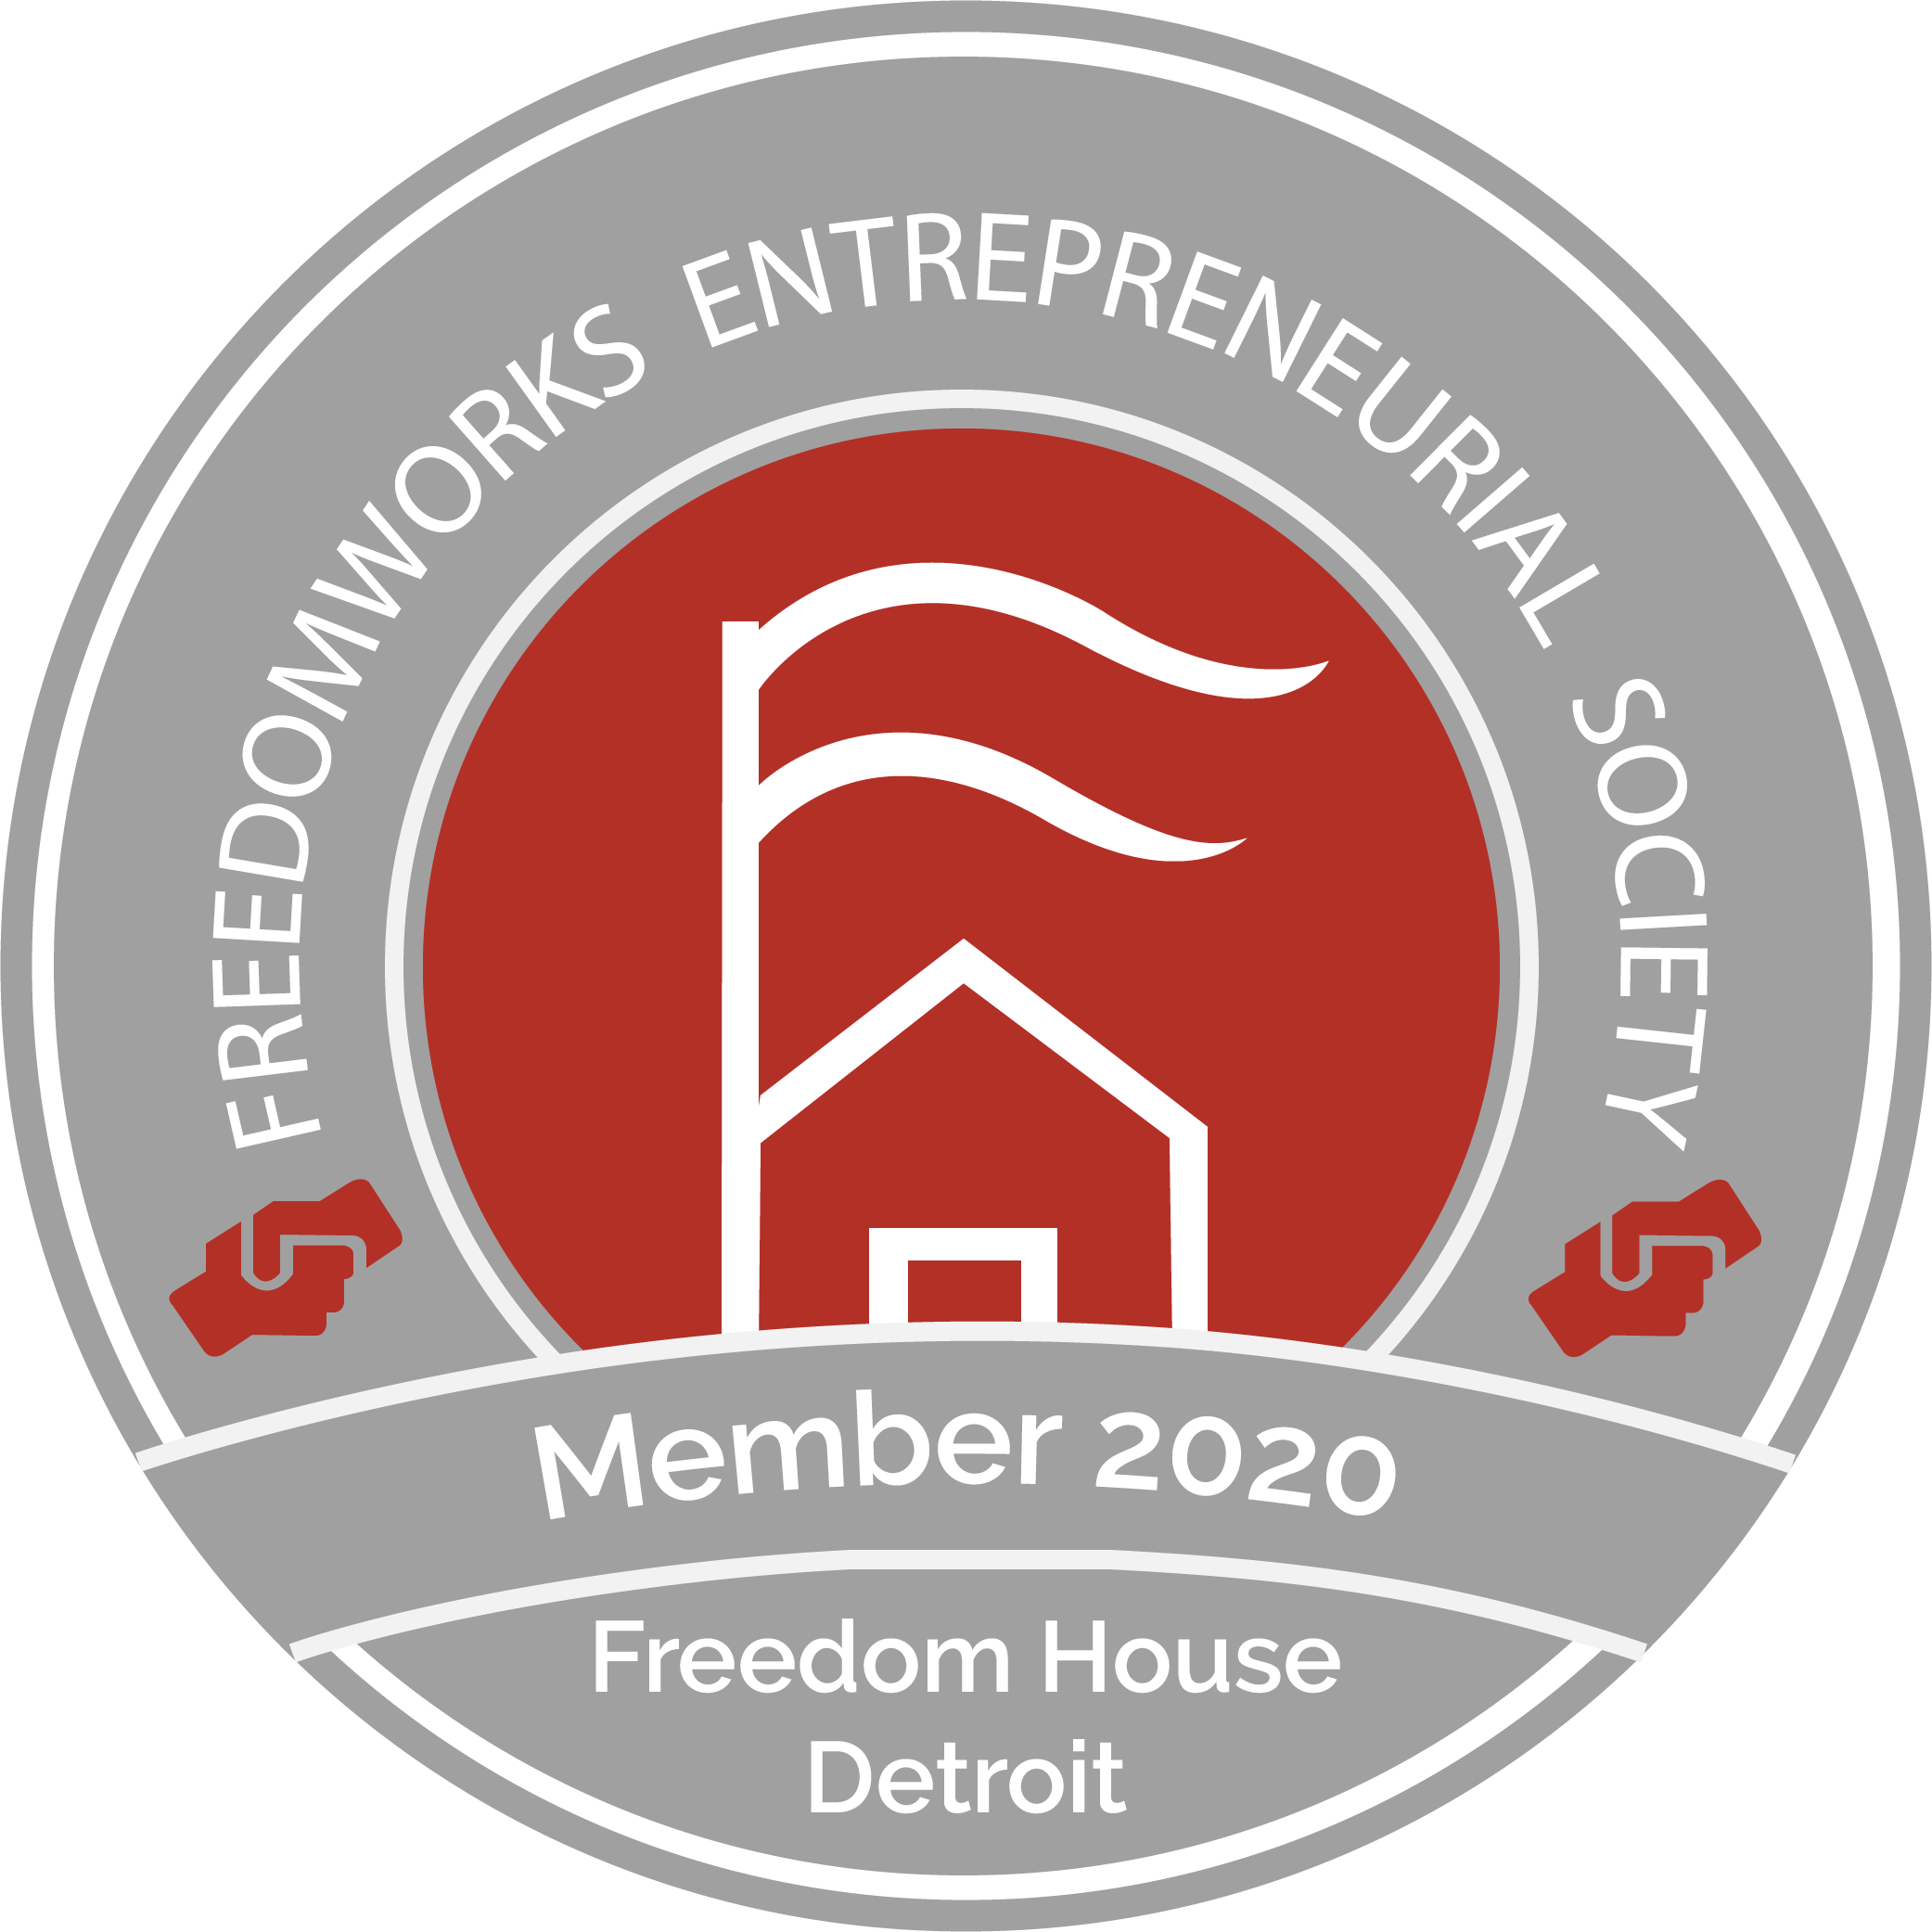 freedomhousedetroit